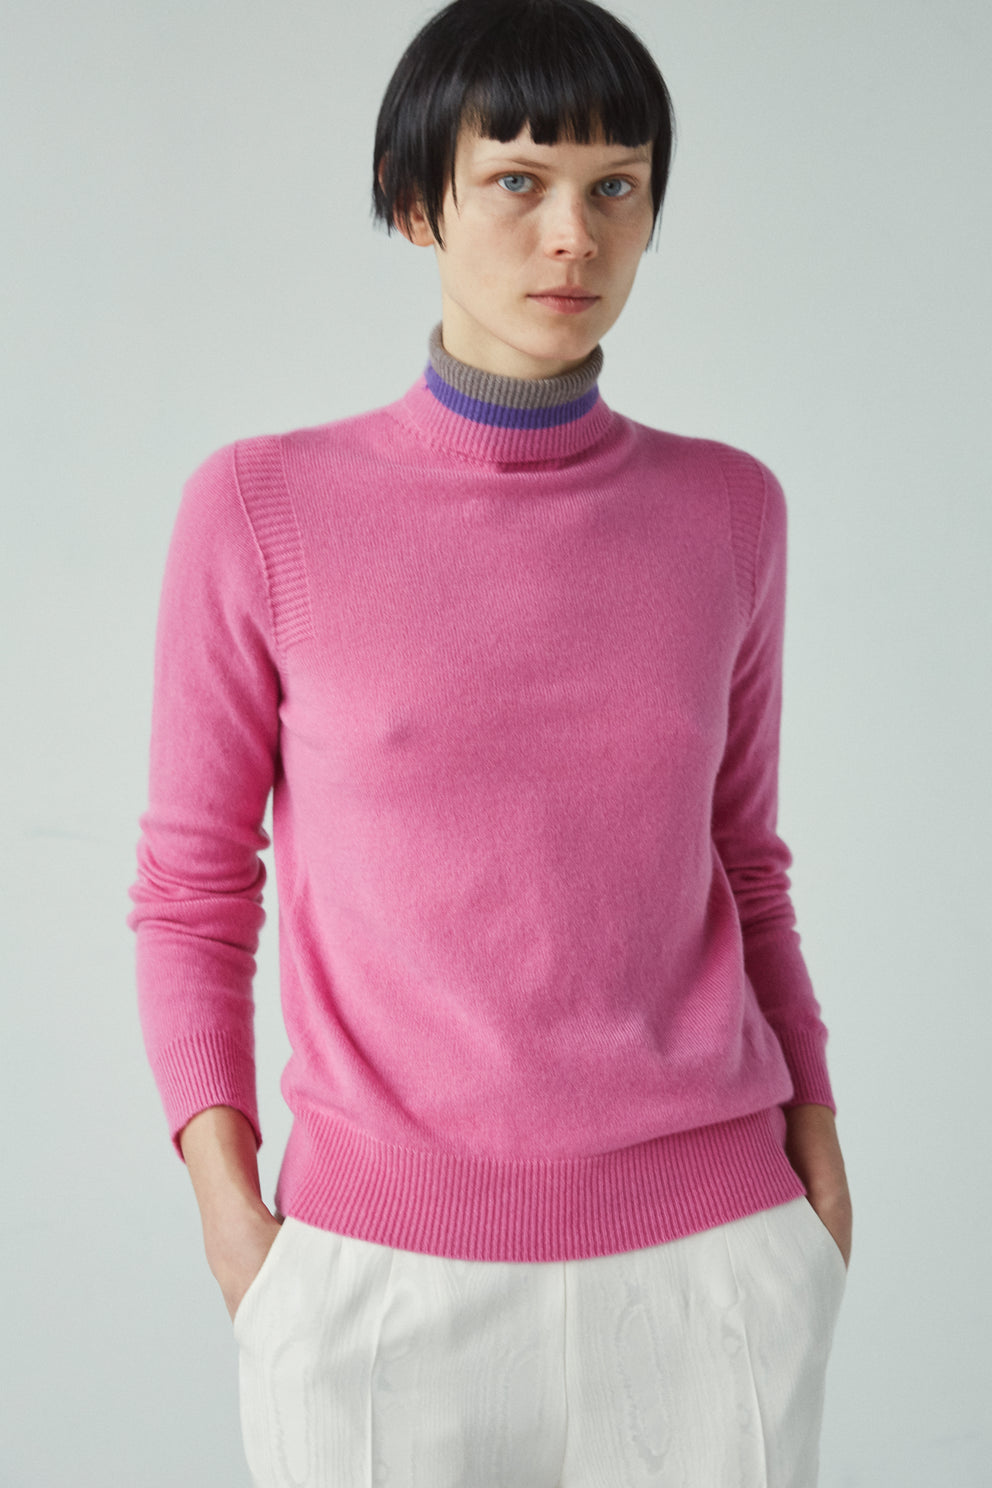 Lucent Turtleneck - Rachel Comey